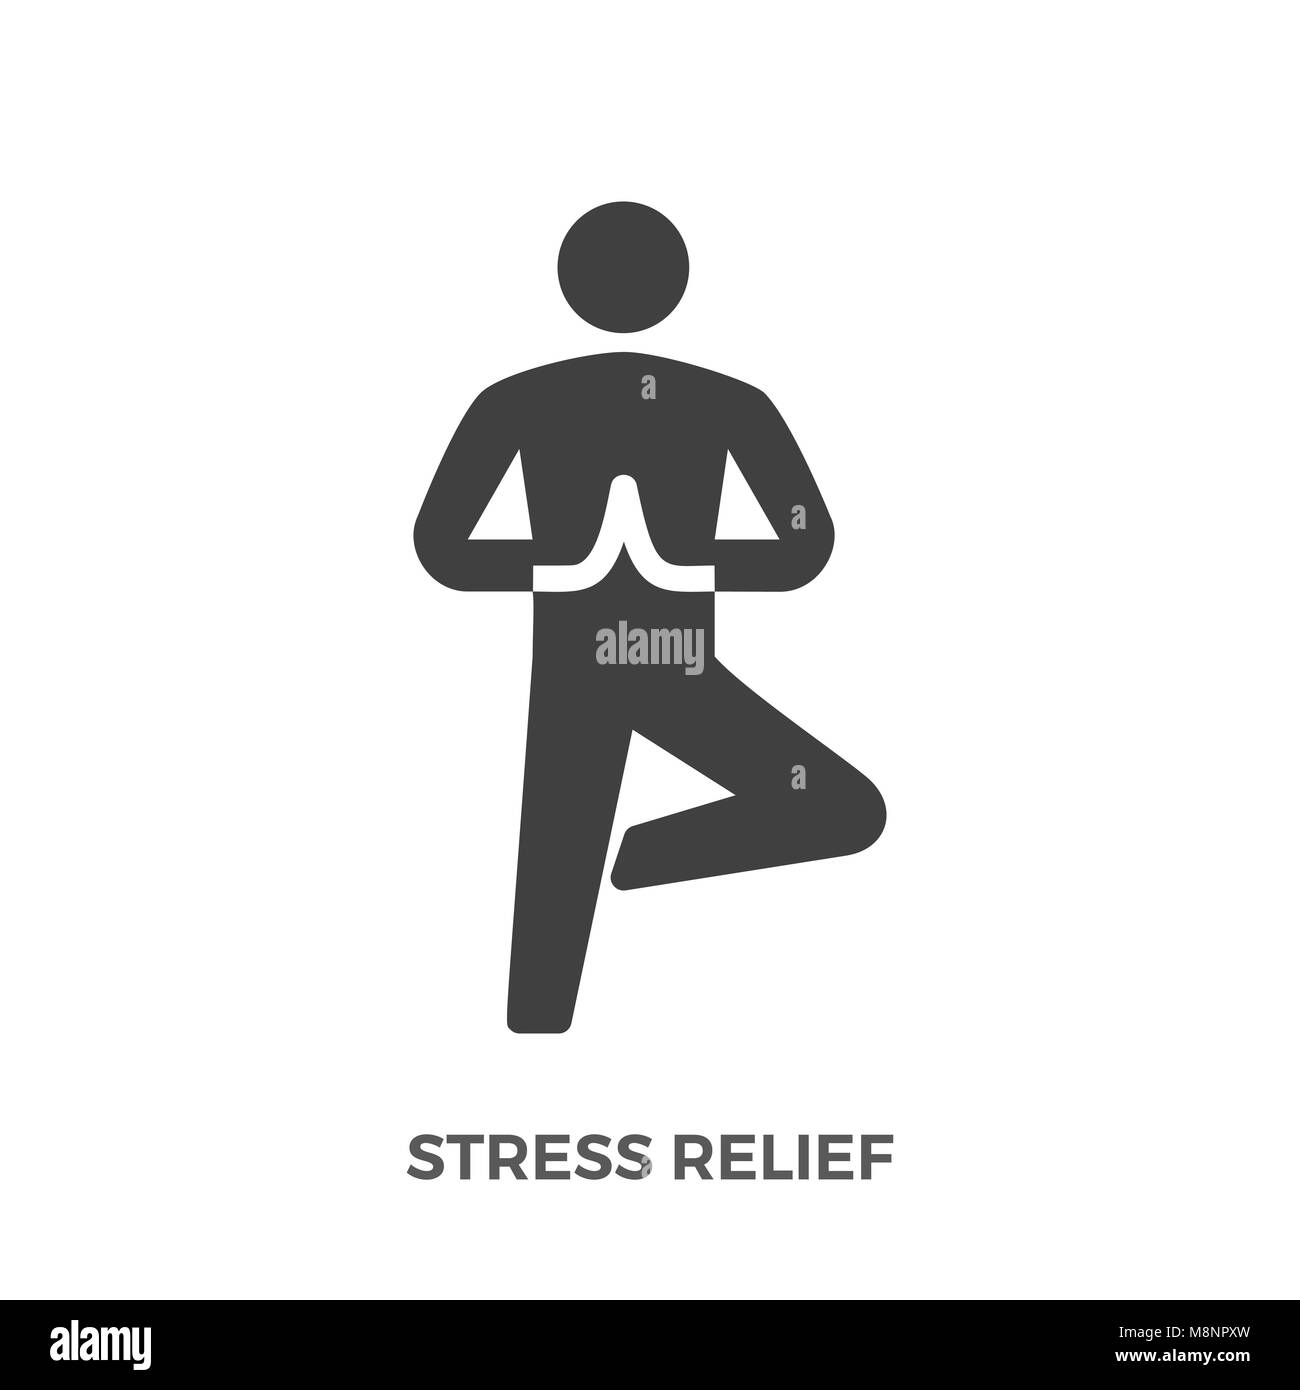 Stress Relief Glyph Vector Icon Isolated on the White Background. - Stock Image